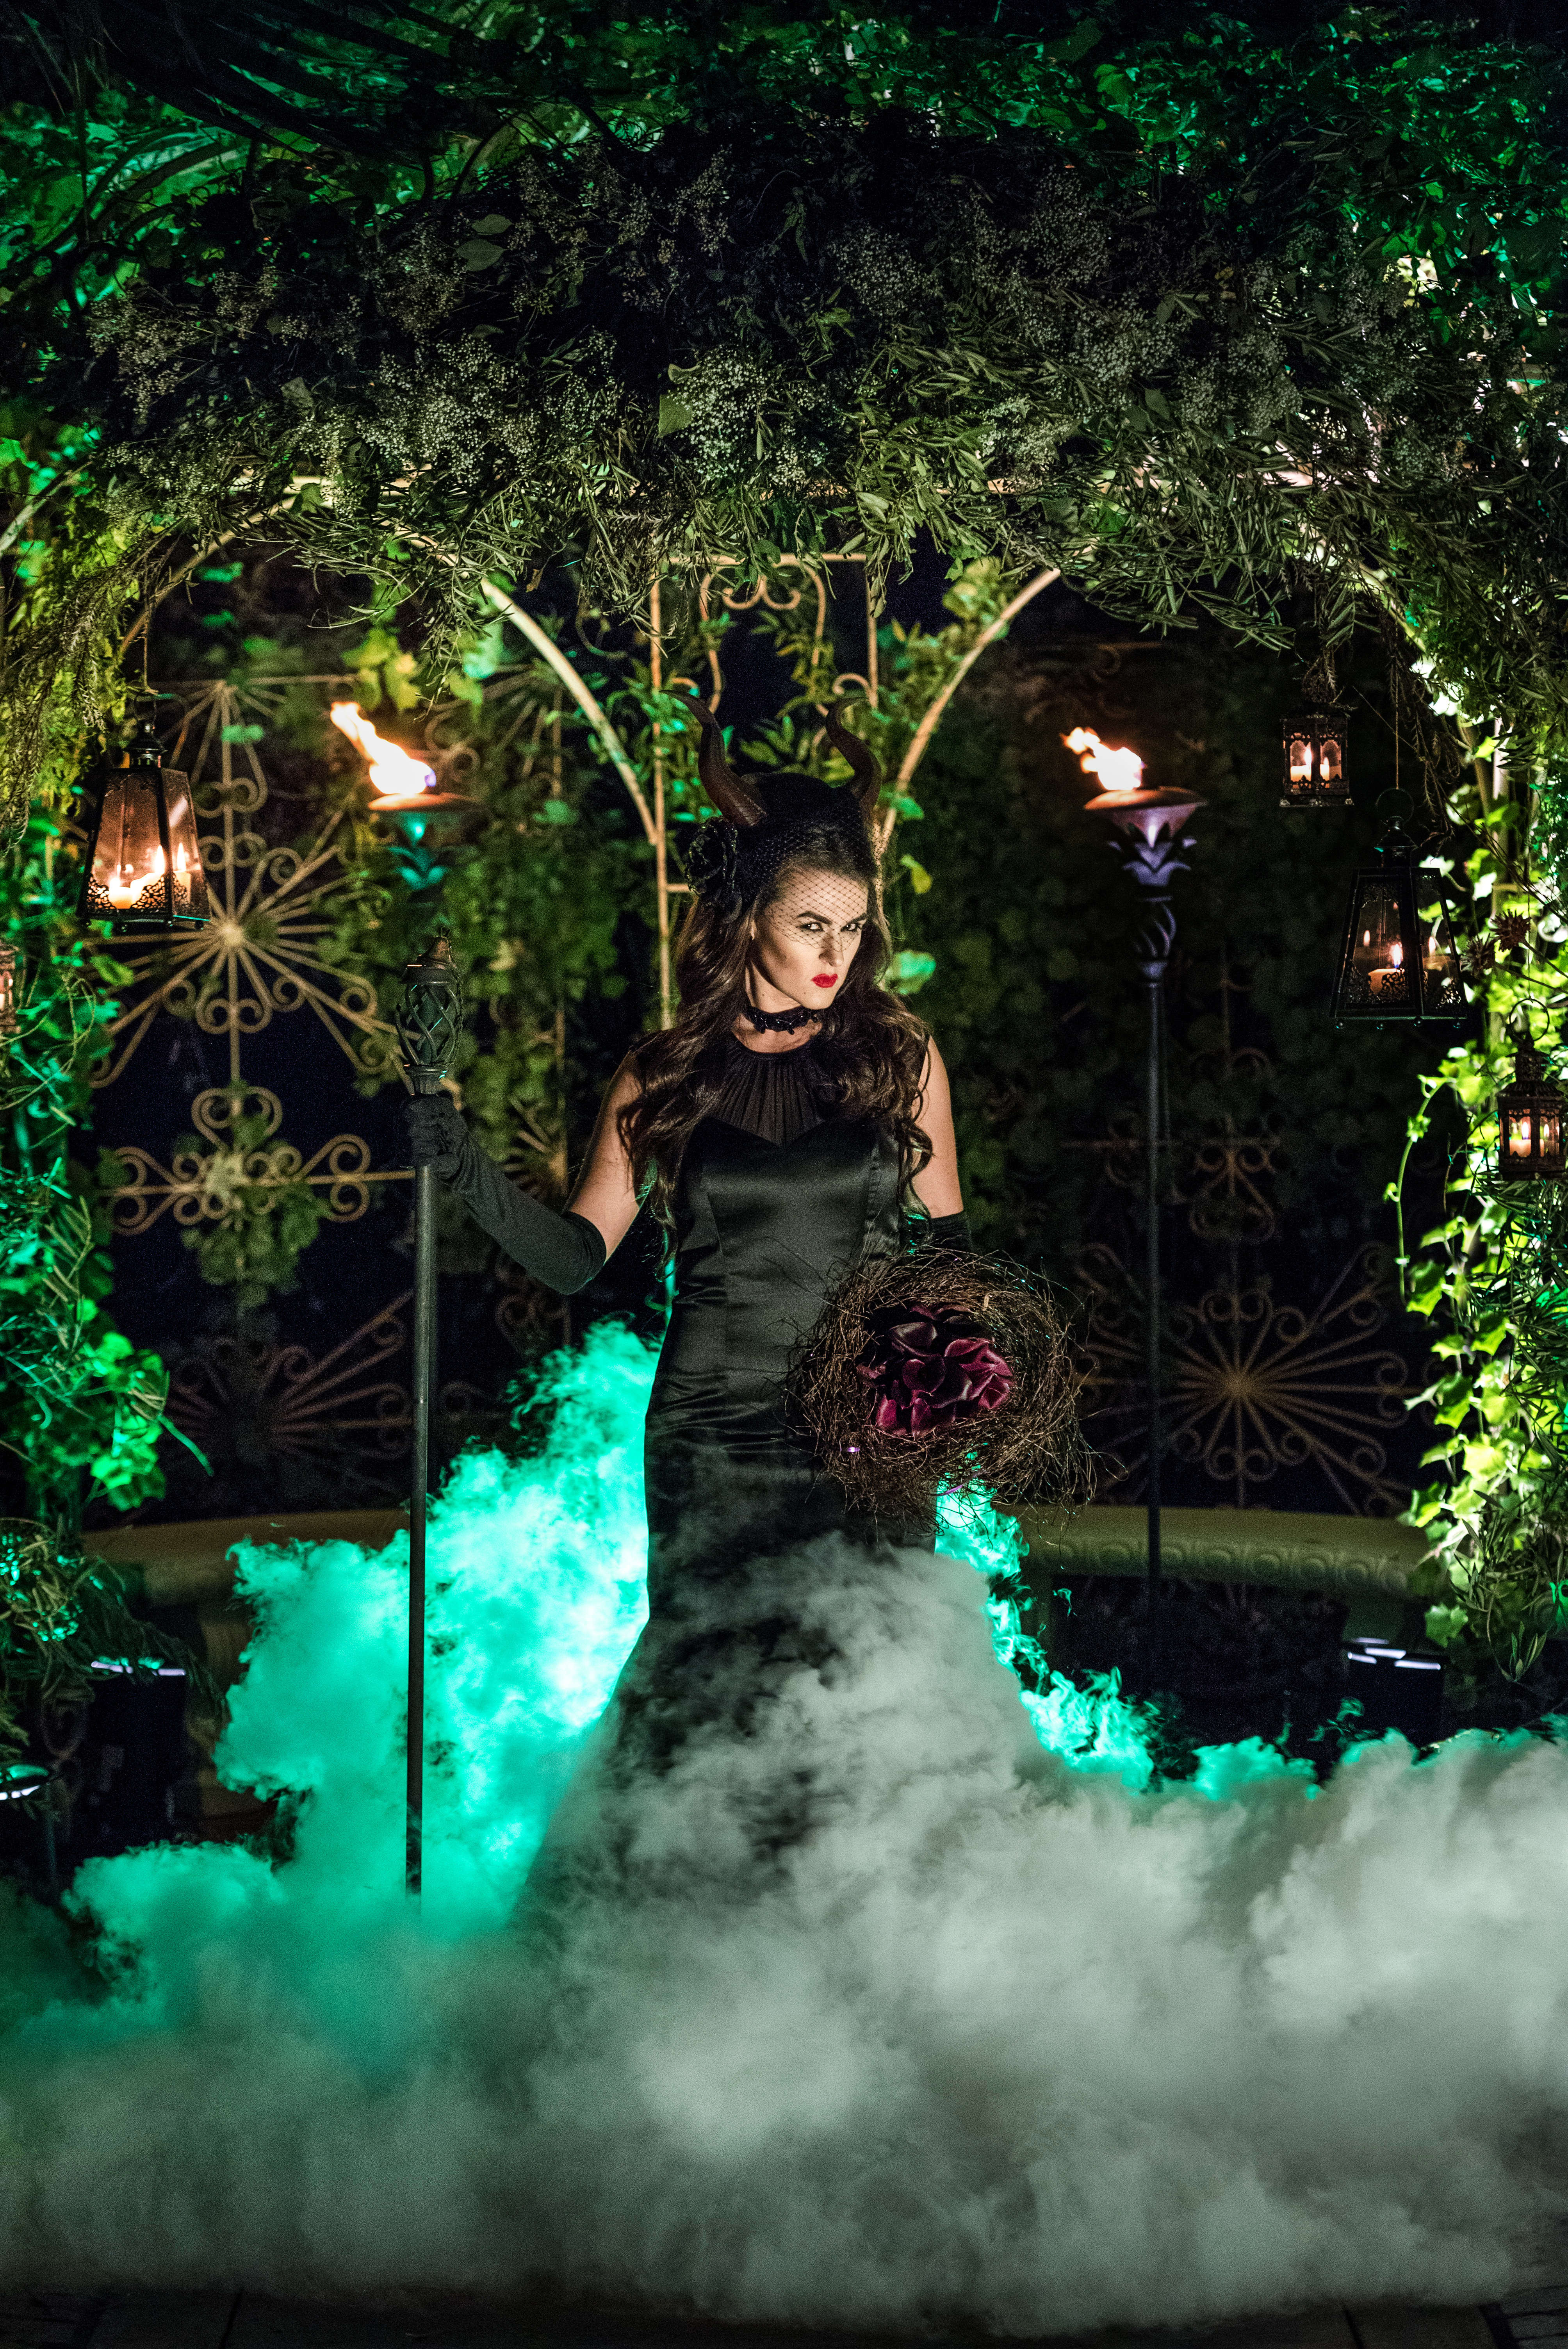 Disney Photo Shoot Maleficent specialty lighting and dancing in the clouds